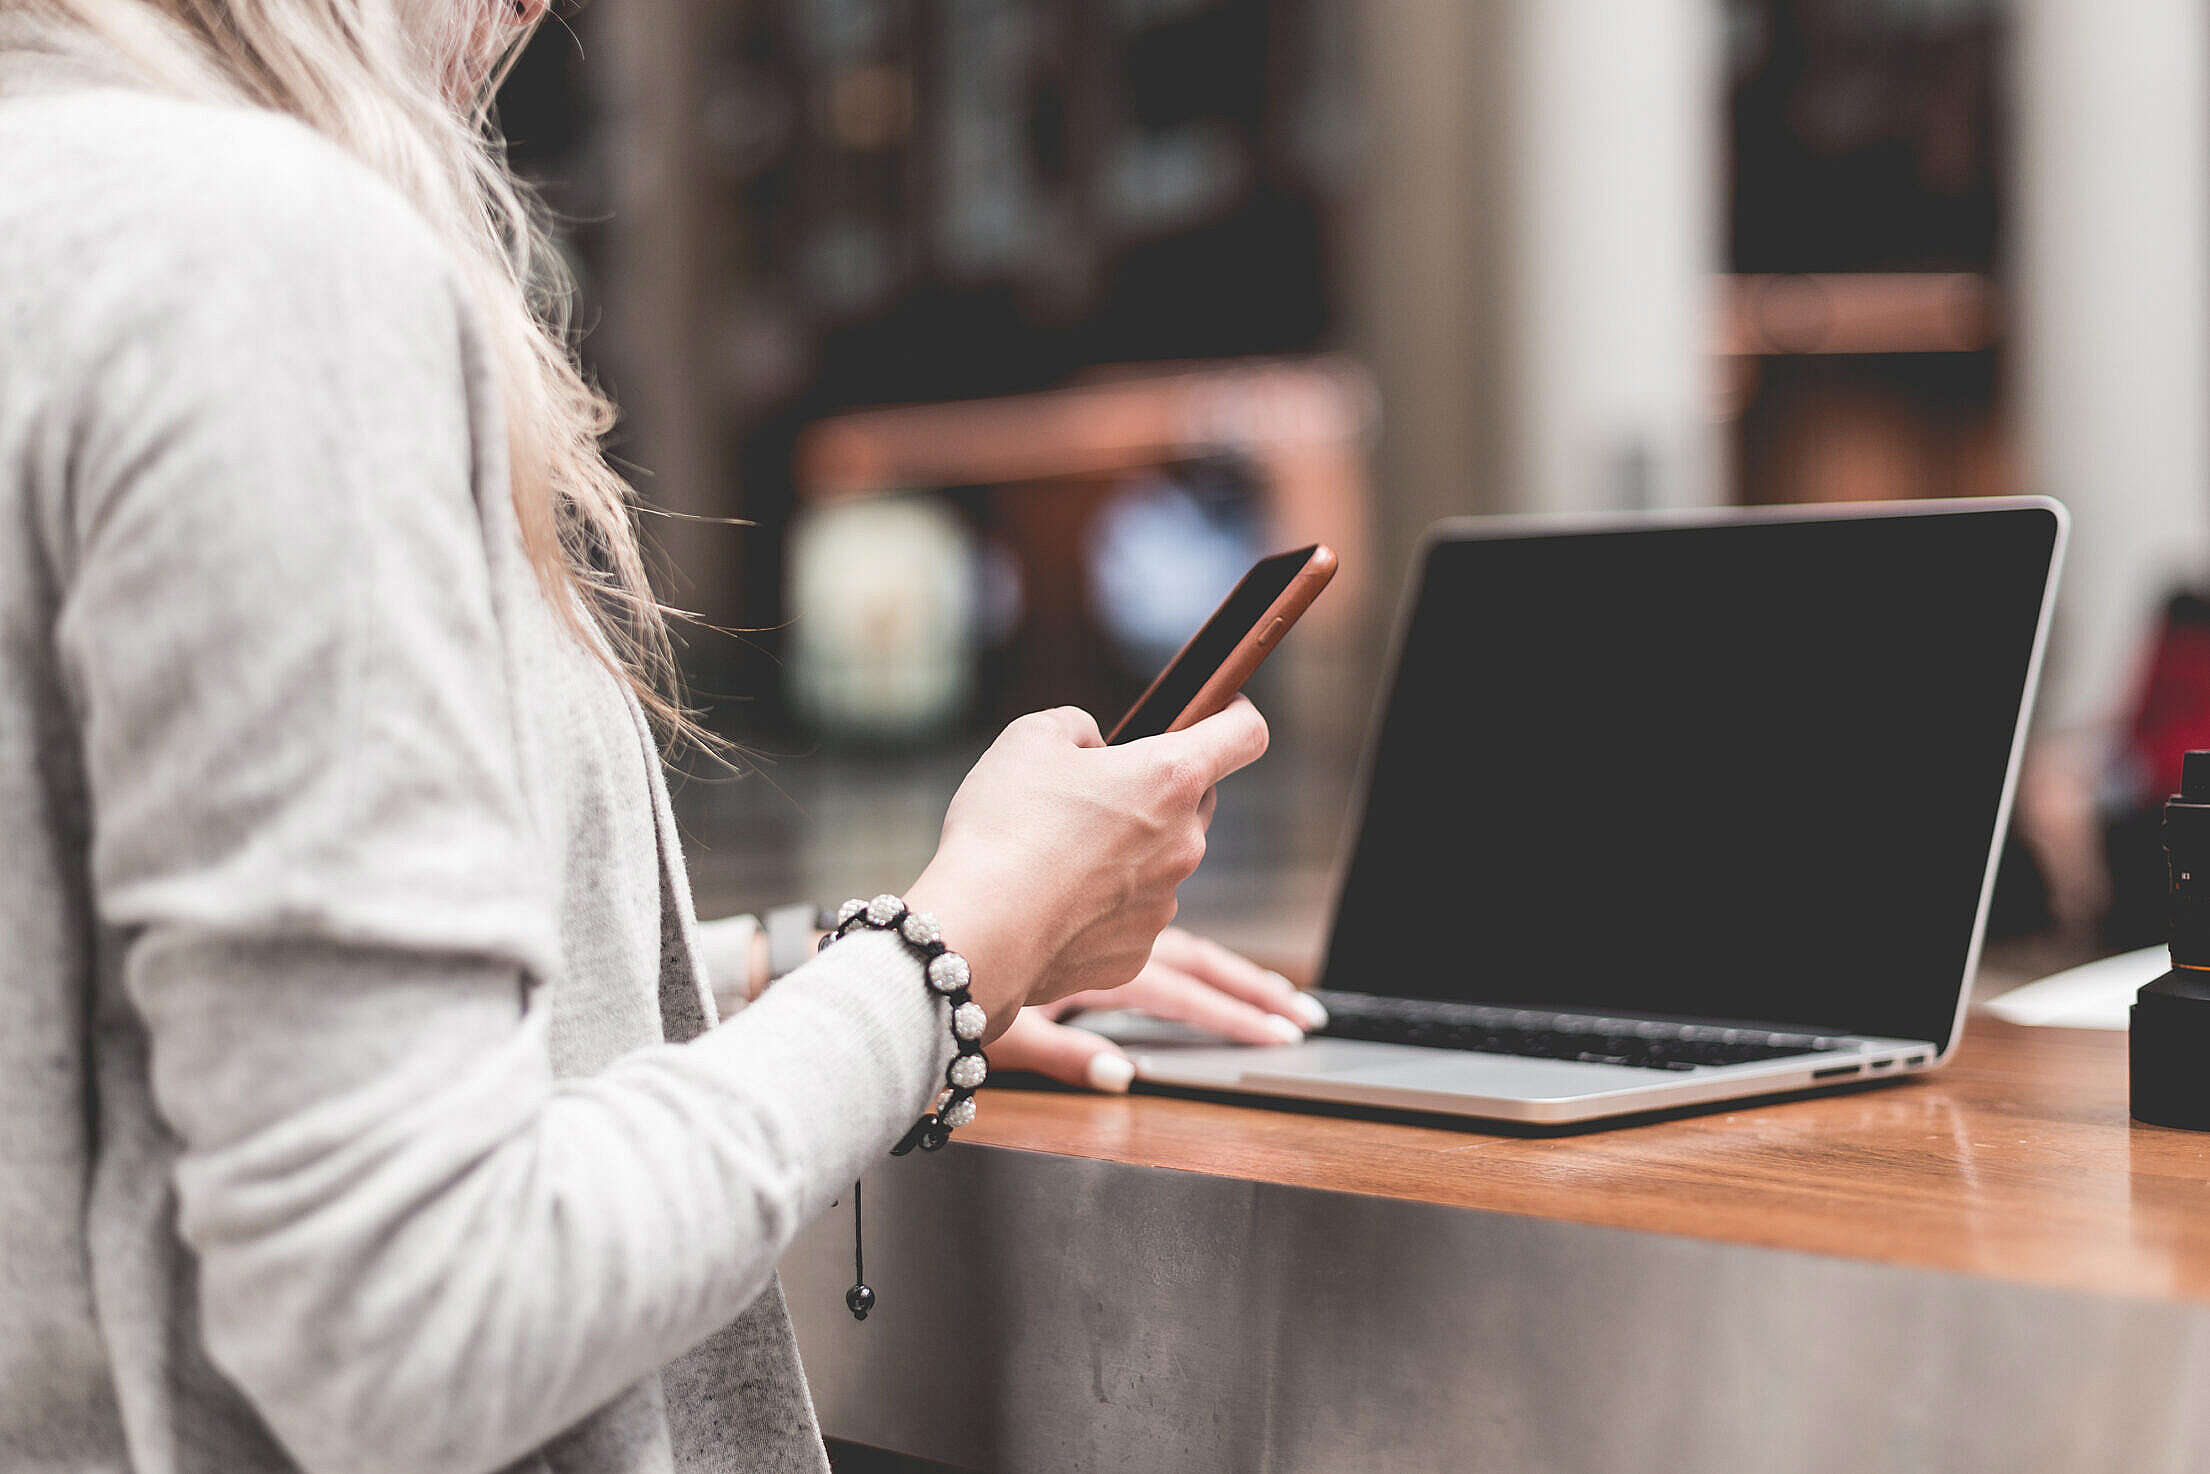 Woman Using Her Smartphone While Working Remotely on Laptop Free Stock Photo